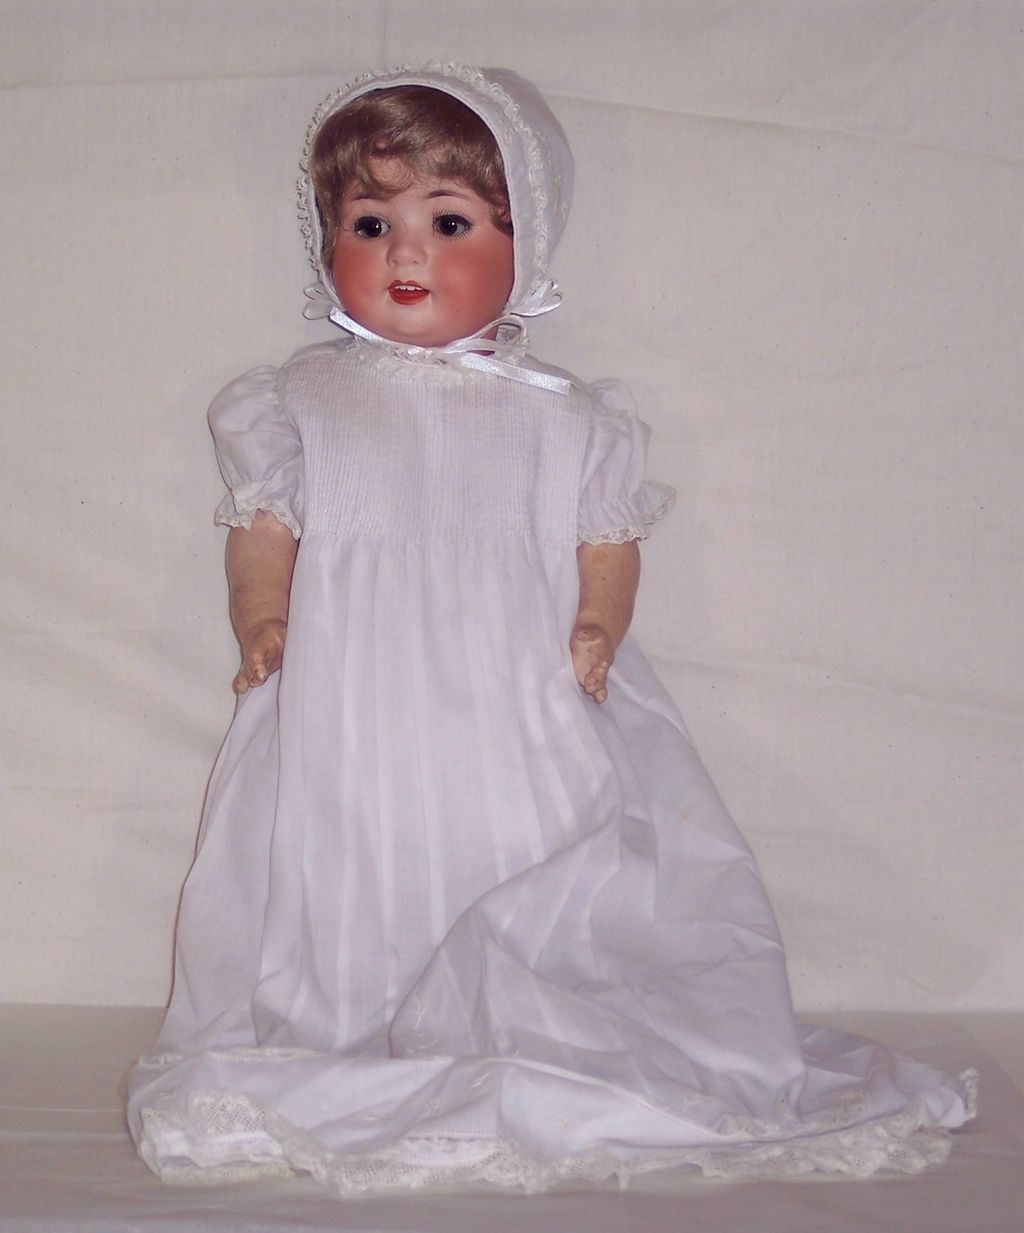 Ernst Heubach - German Bisque Doll – Early 1900's